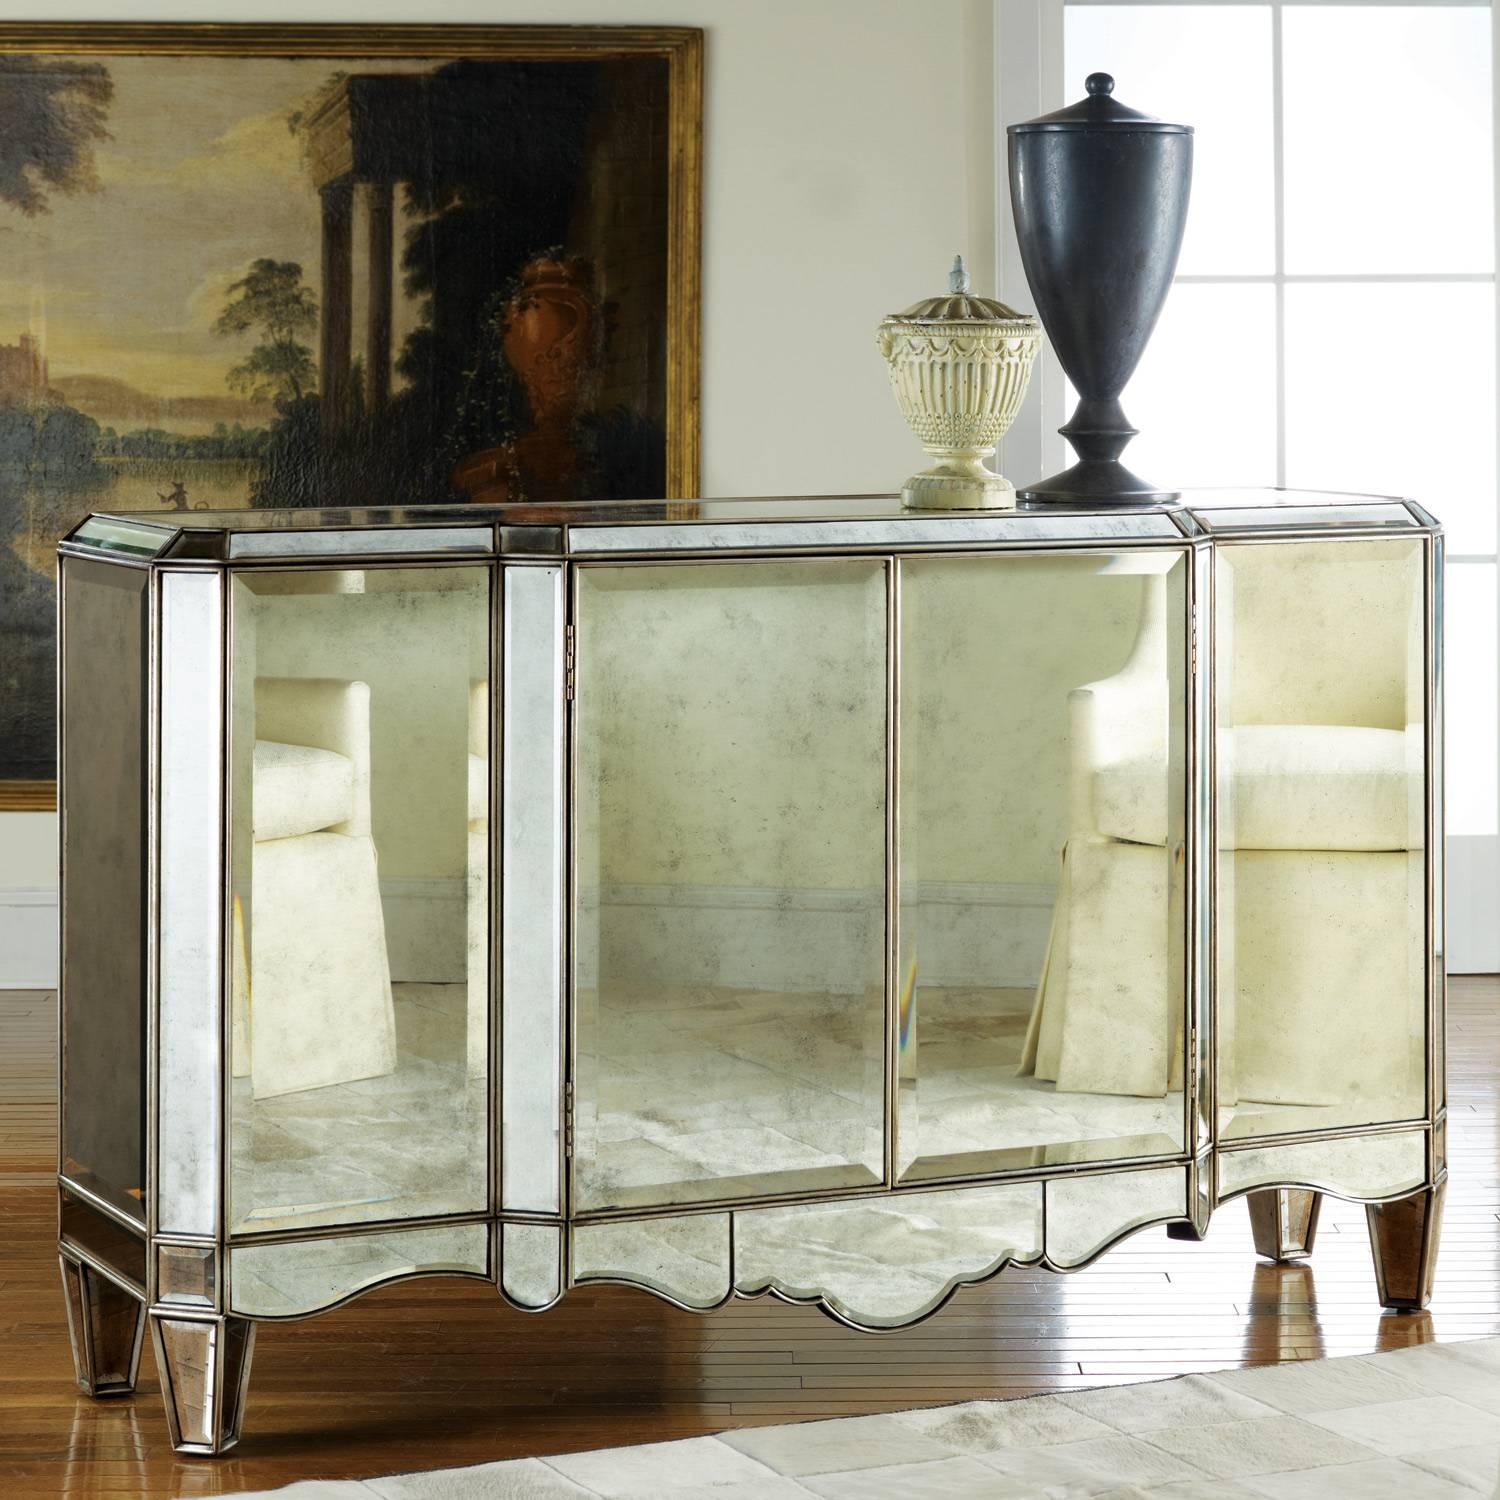 Custom Handcrafted & Mirrored Buffets, Sideboards & Cabinets For with regard to Mirrored Sideboards (Image 8 of 30)